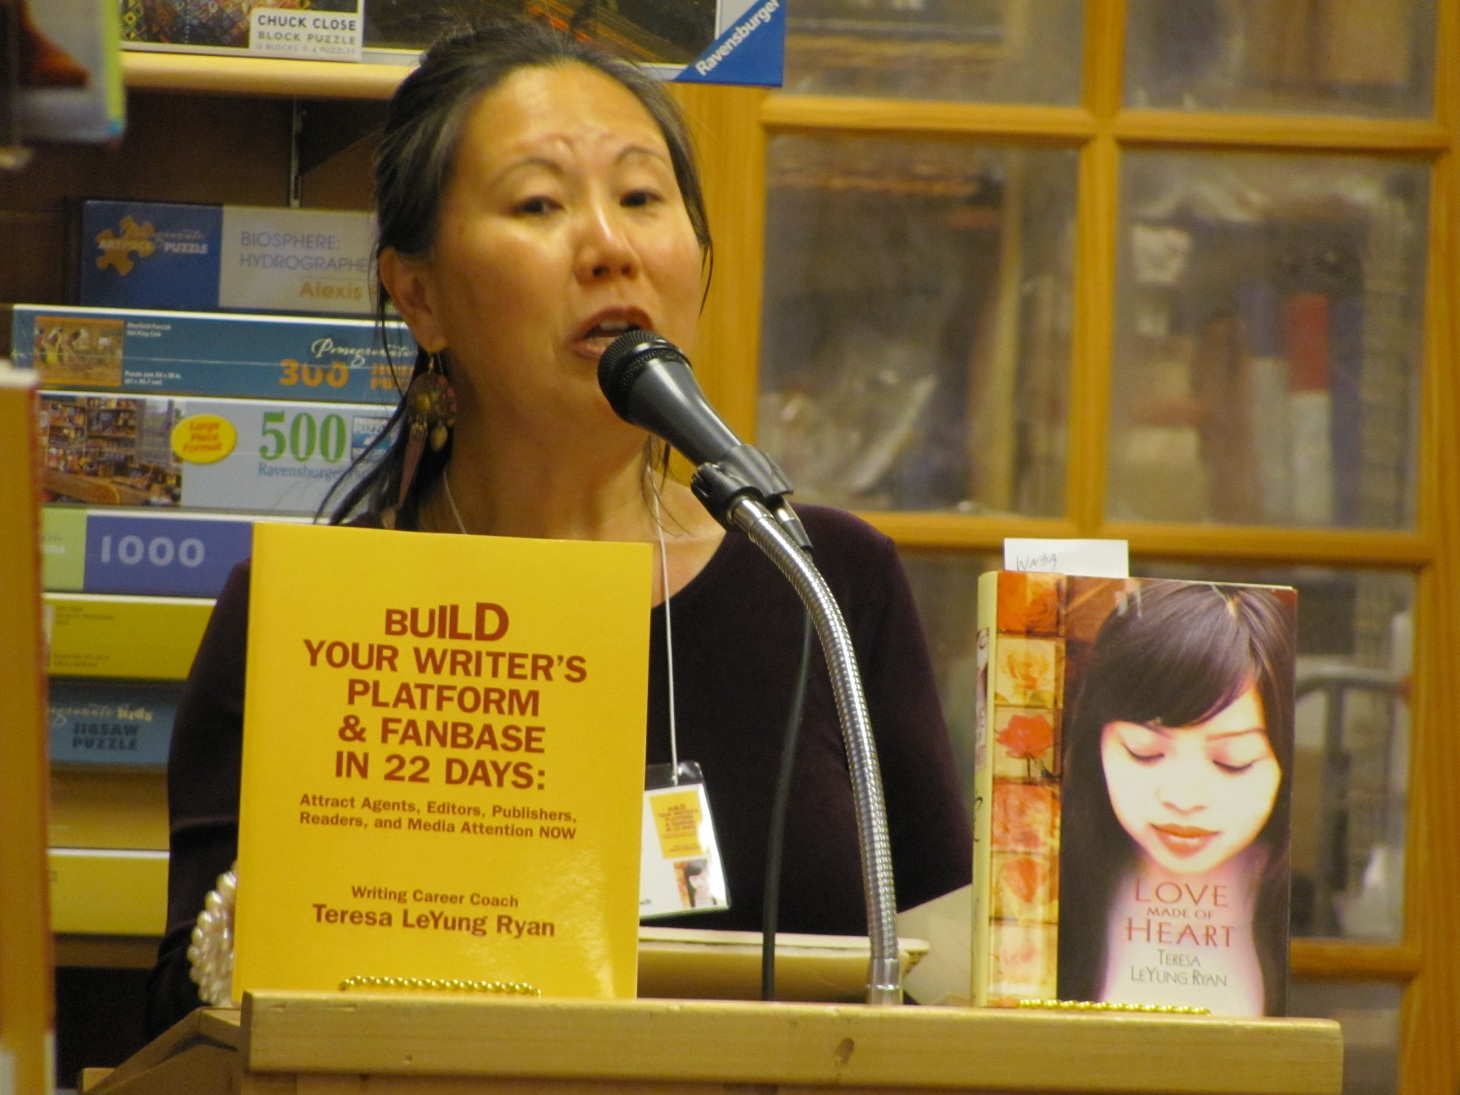 Coach Teresa LeYung-Ryan says Reach out not stress out to build your writer's platform & fanbase